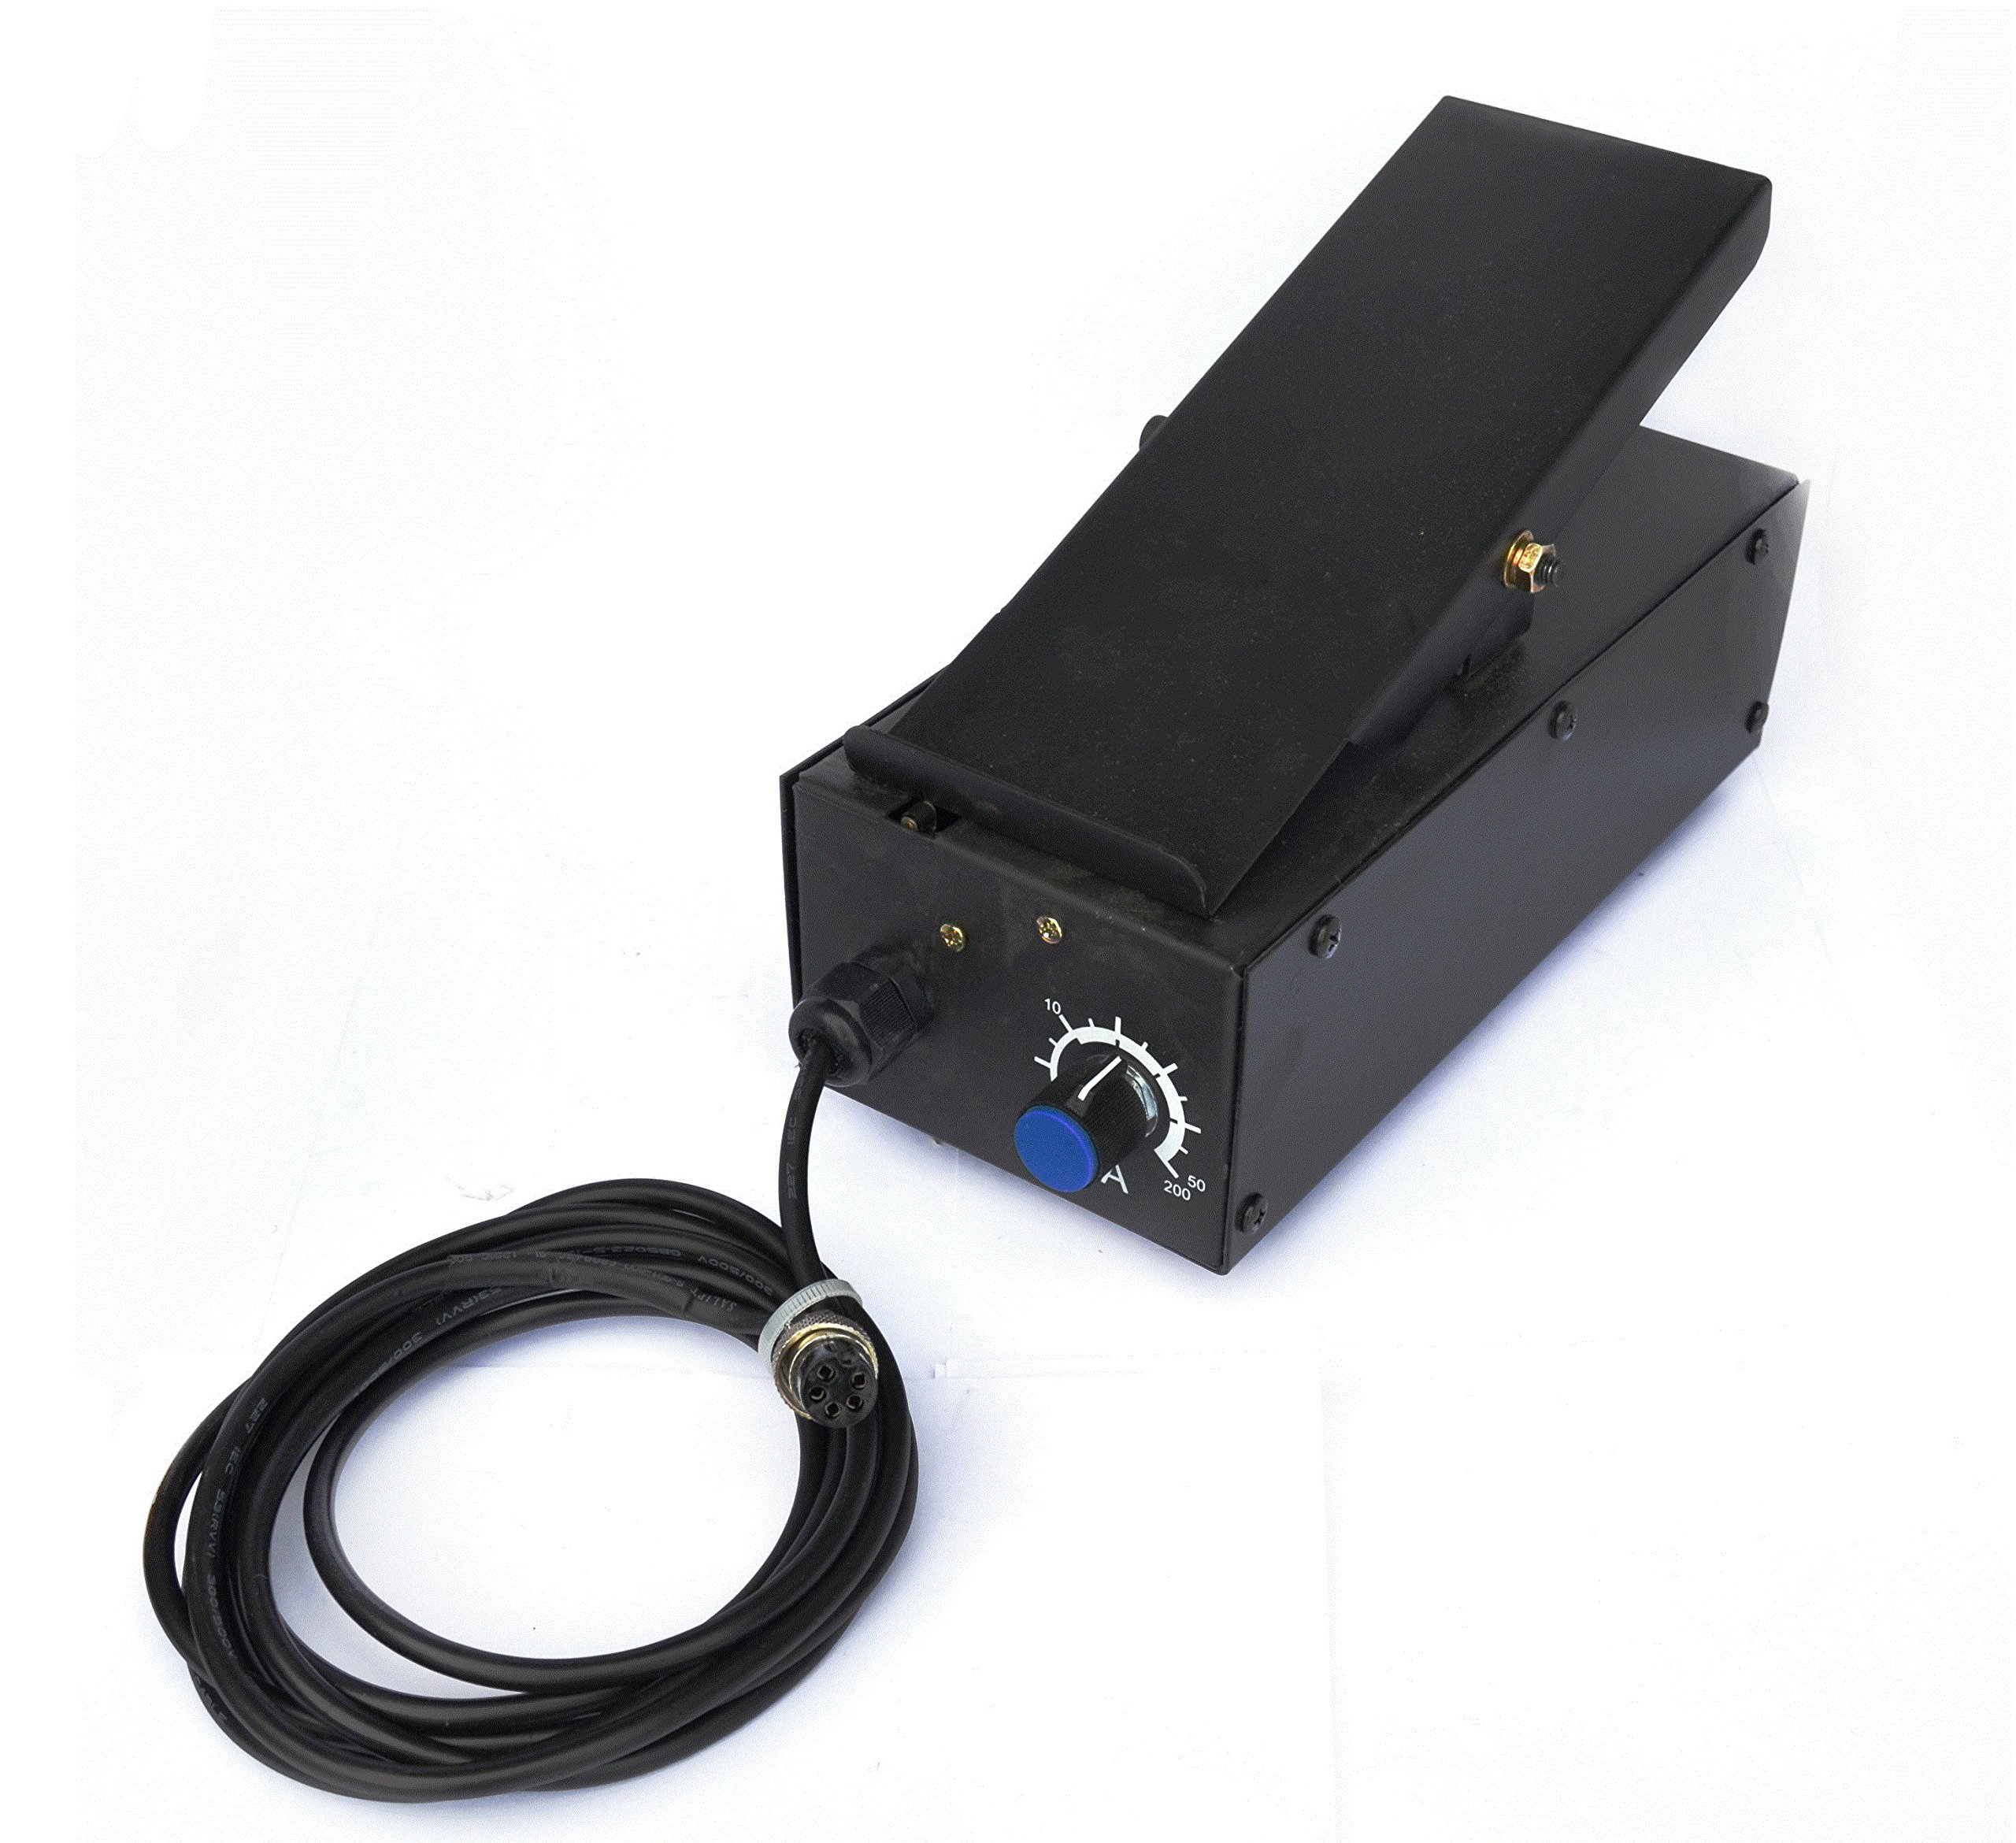 Lotos Technology FP05 Foot Pedal for Plasma Cutter Welder Amp Control 5 Pin Lotos FP05 for Plasma Cutter and Welder Combos CT520D LTPDC2000D by LOTOS